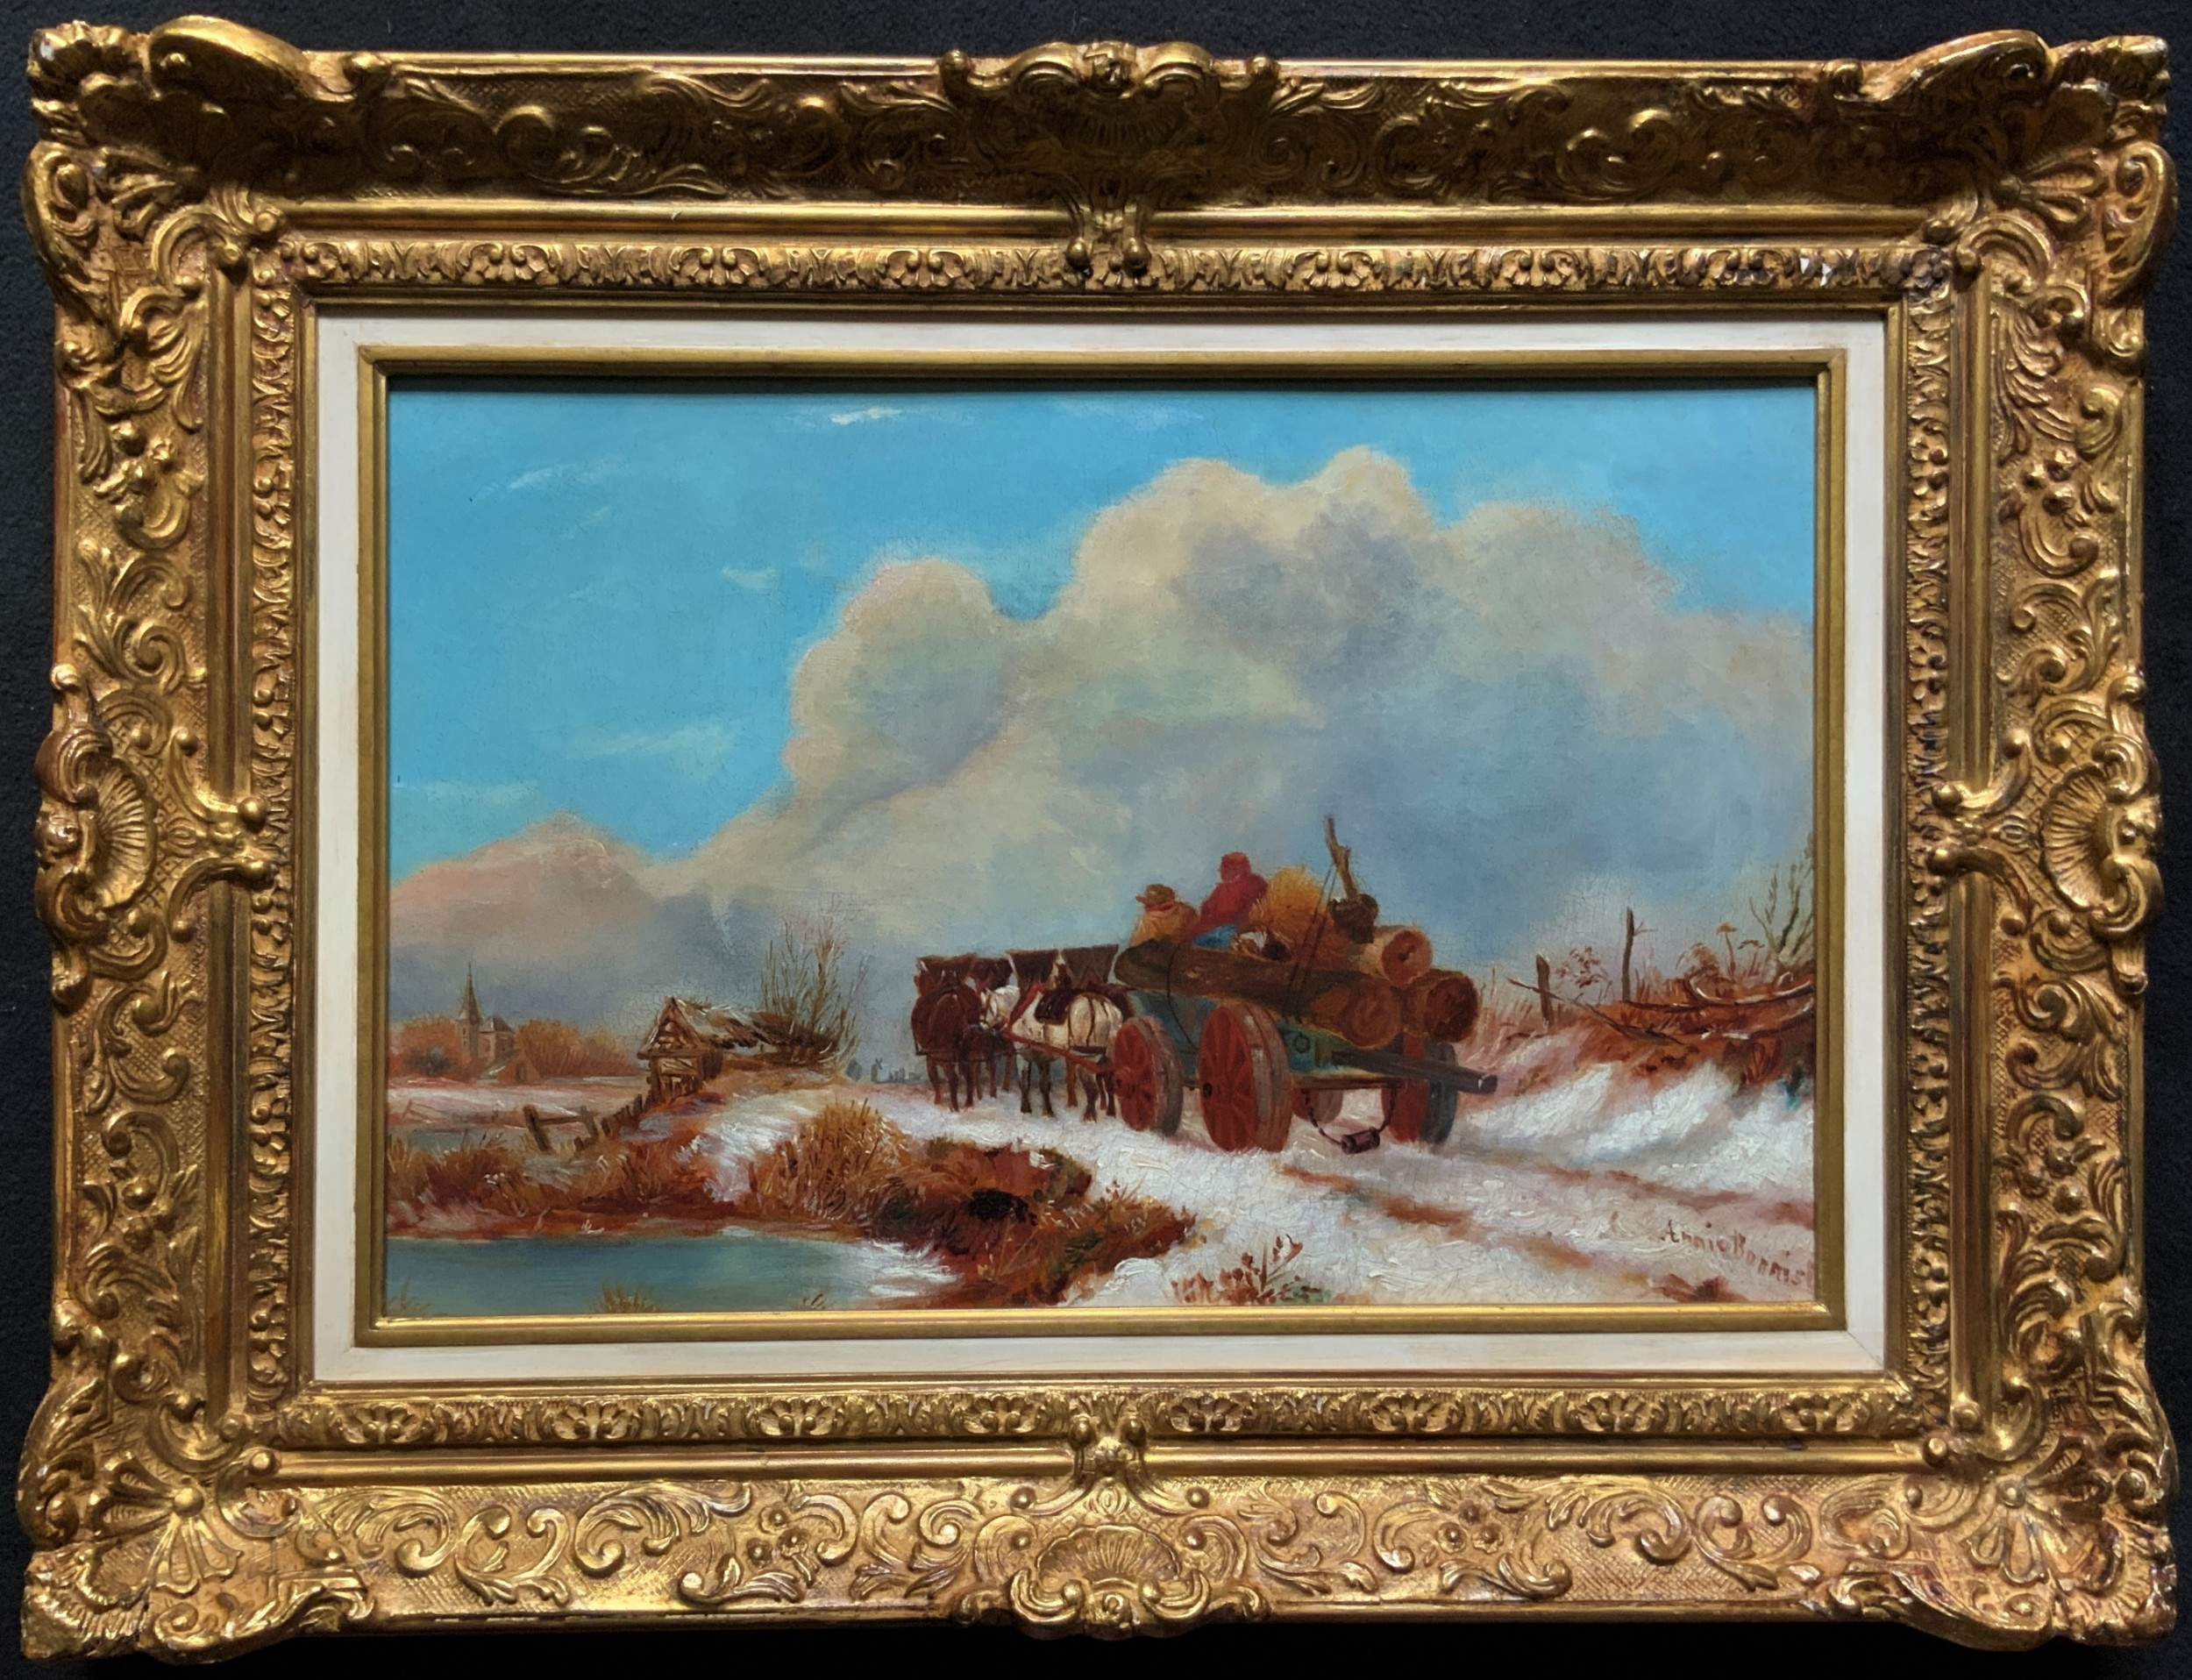 'the loggers return home' superb antique winter landscape oil on canvas painting